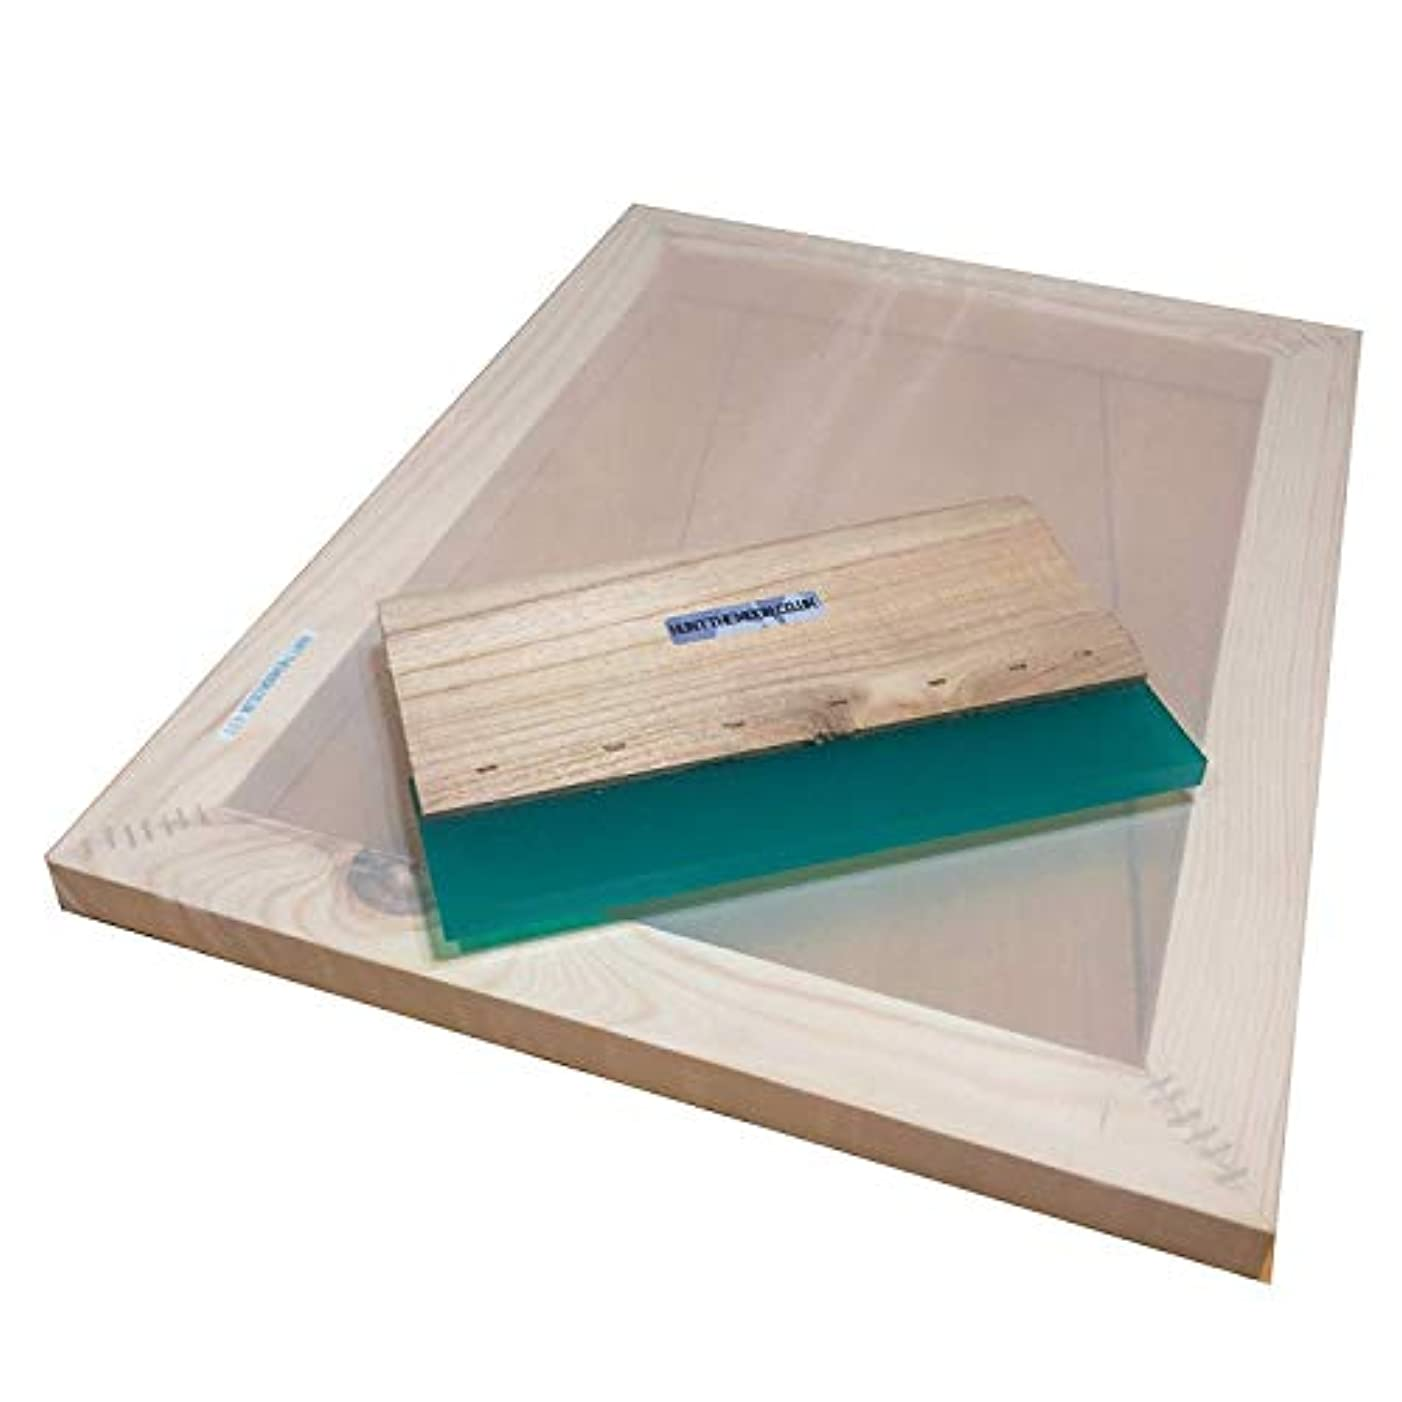 Hunt The Moon Screen Printing Frame and Squeegee Kit, Wooden, Large A3 90t